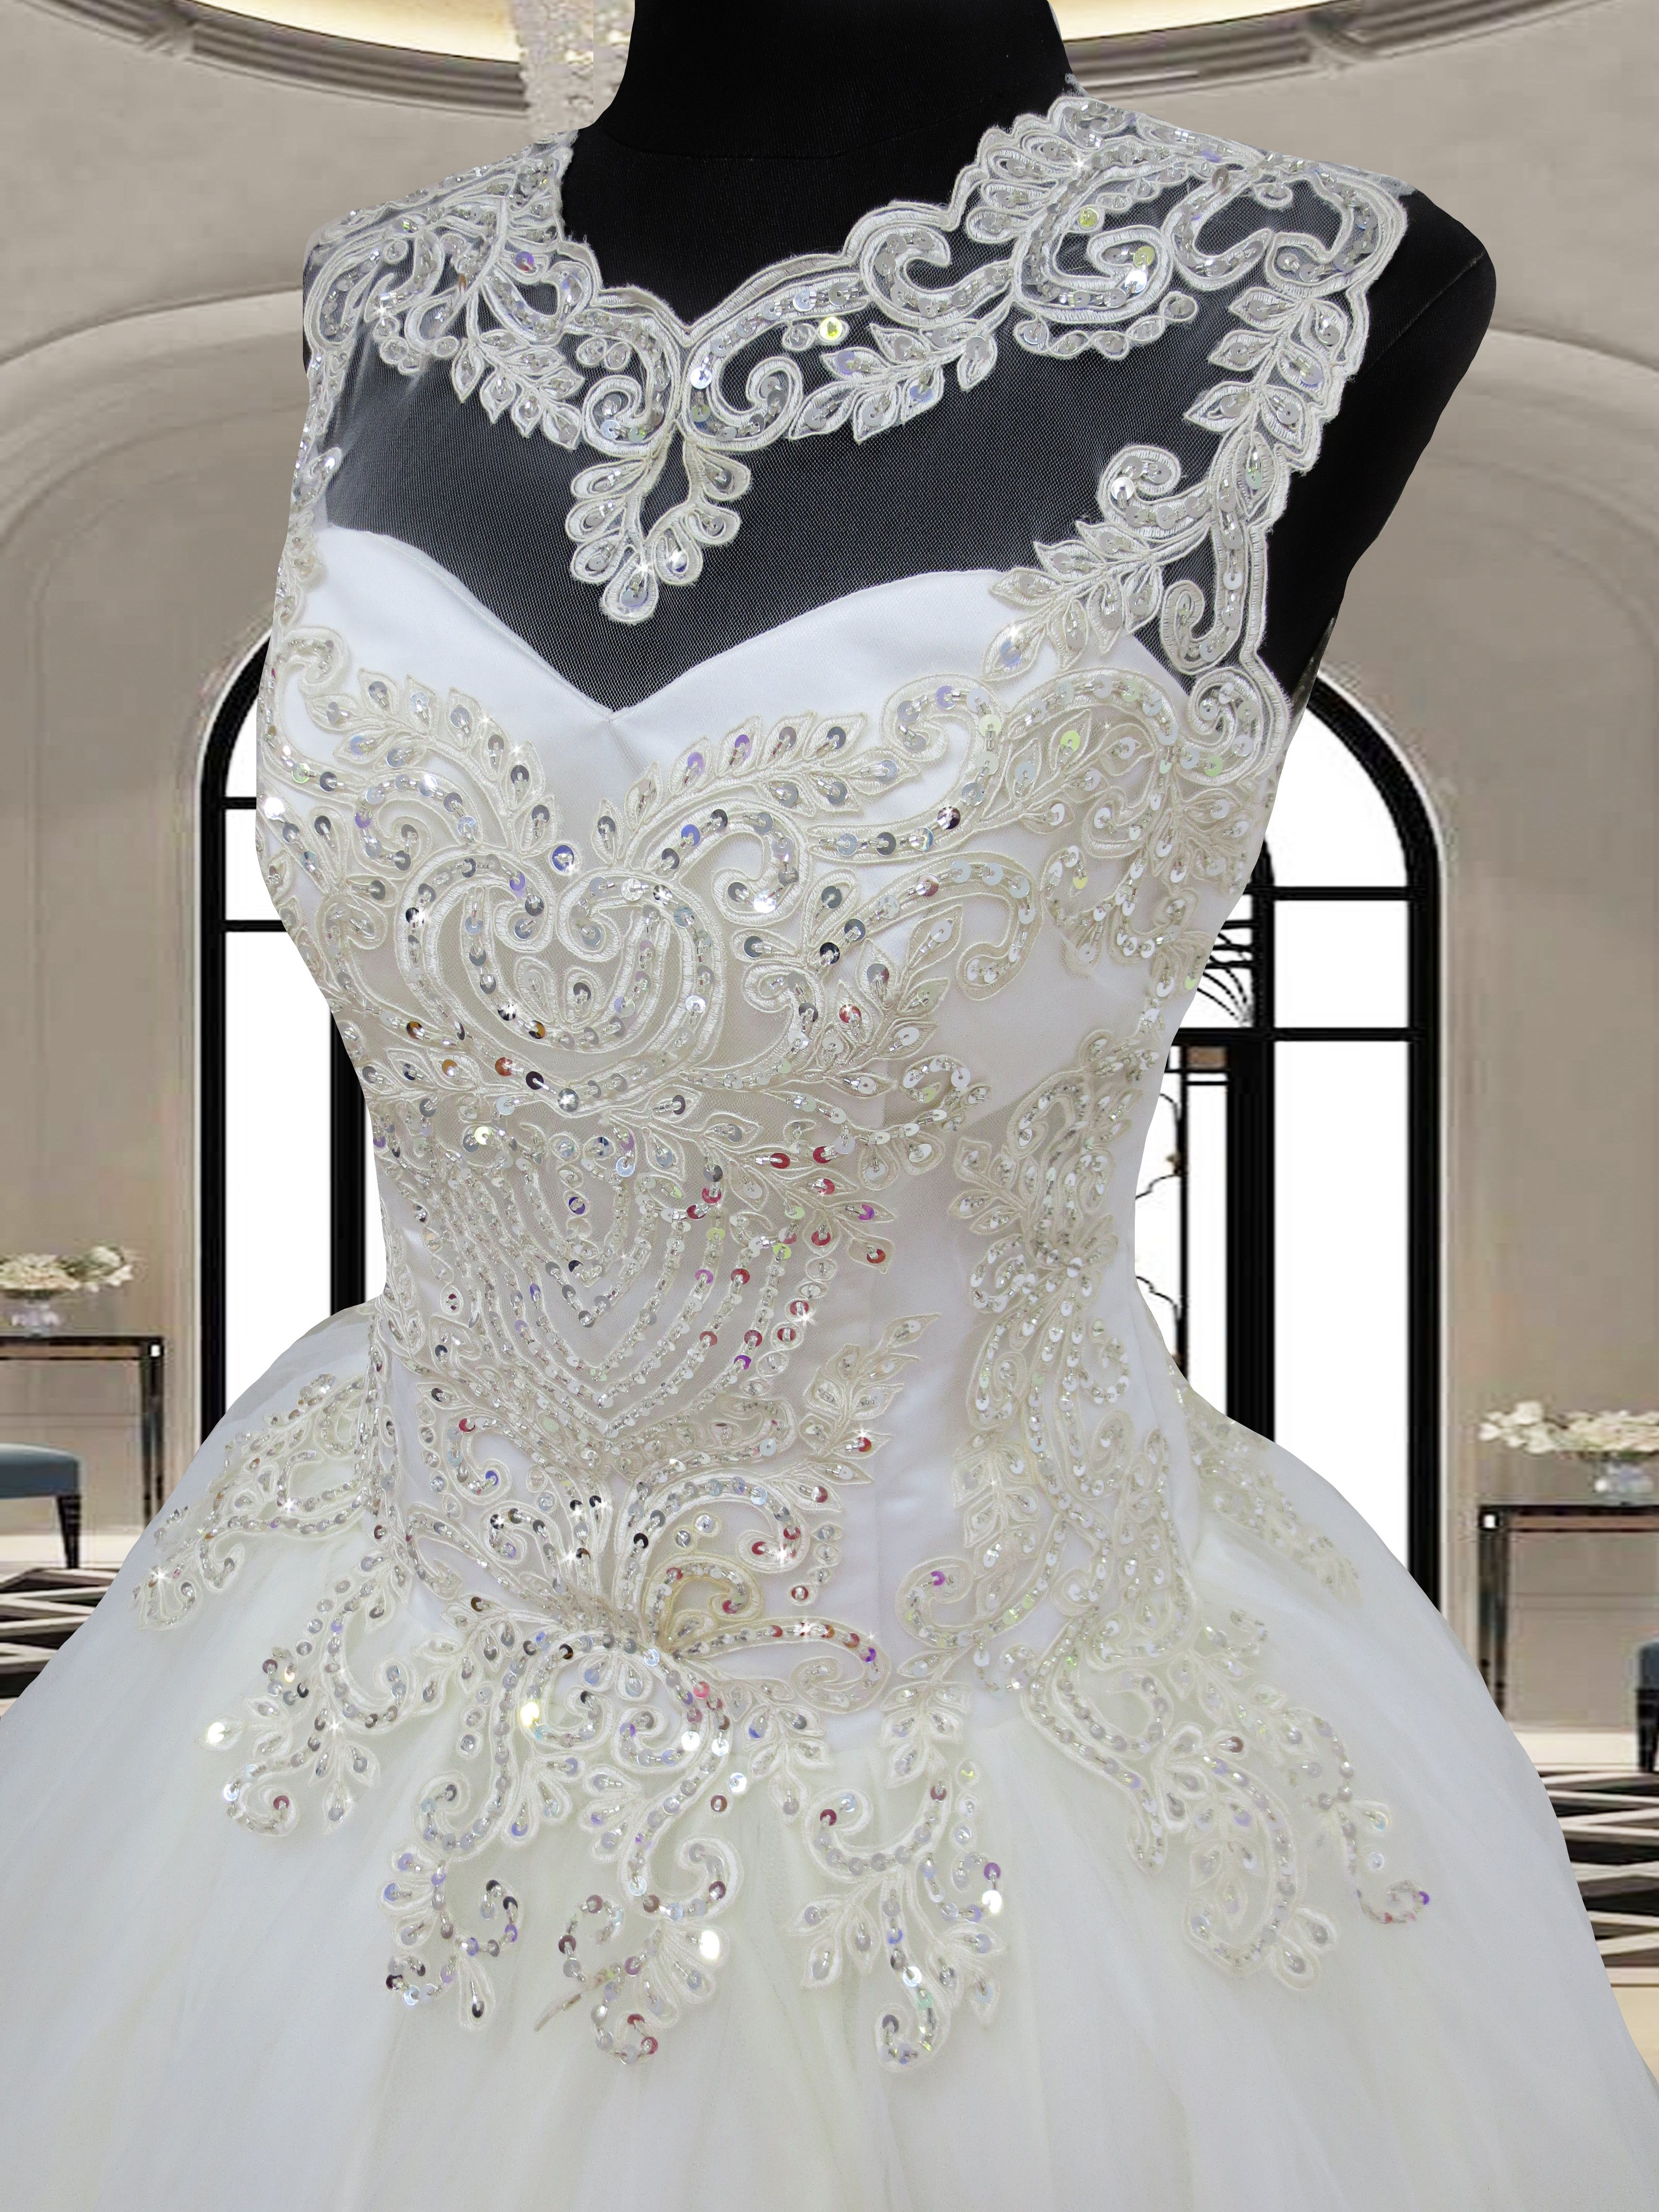 rental wedding dresses white wedding gown white bridal lace wedding gown beadwork tulle wedding gown with back pearl buttons